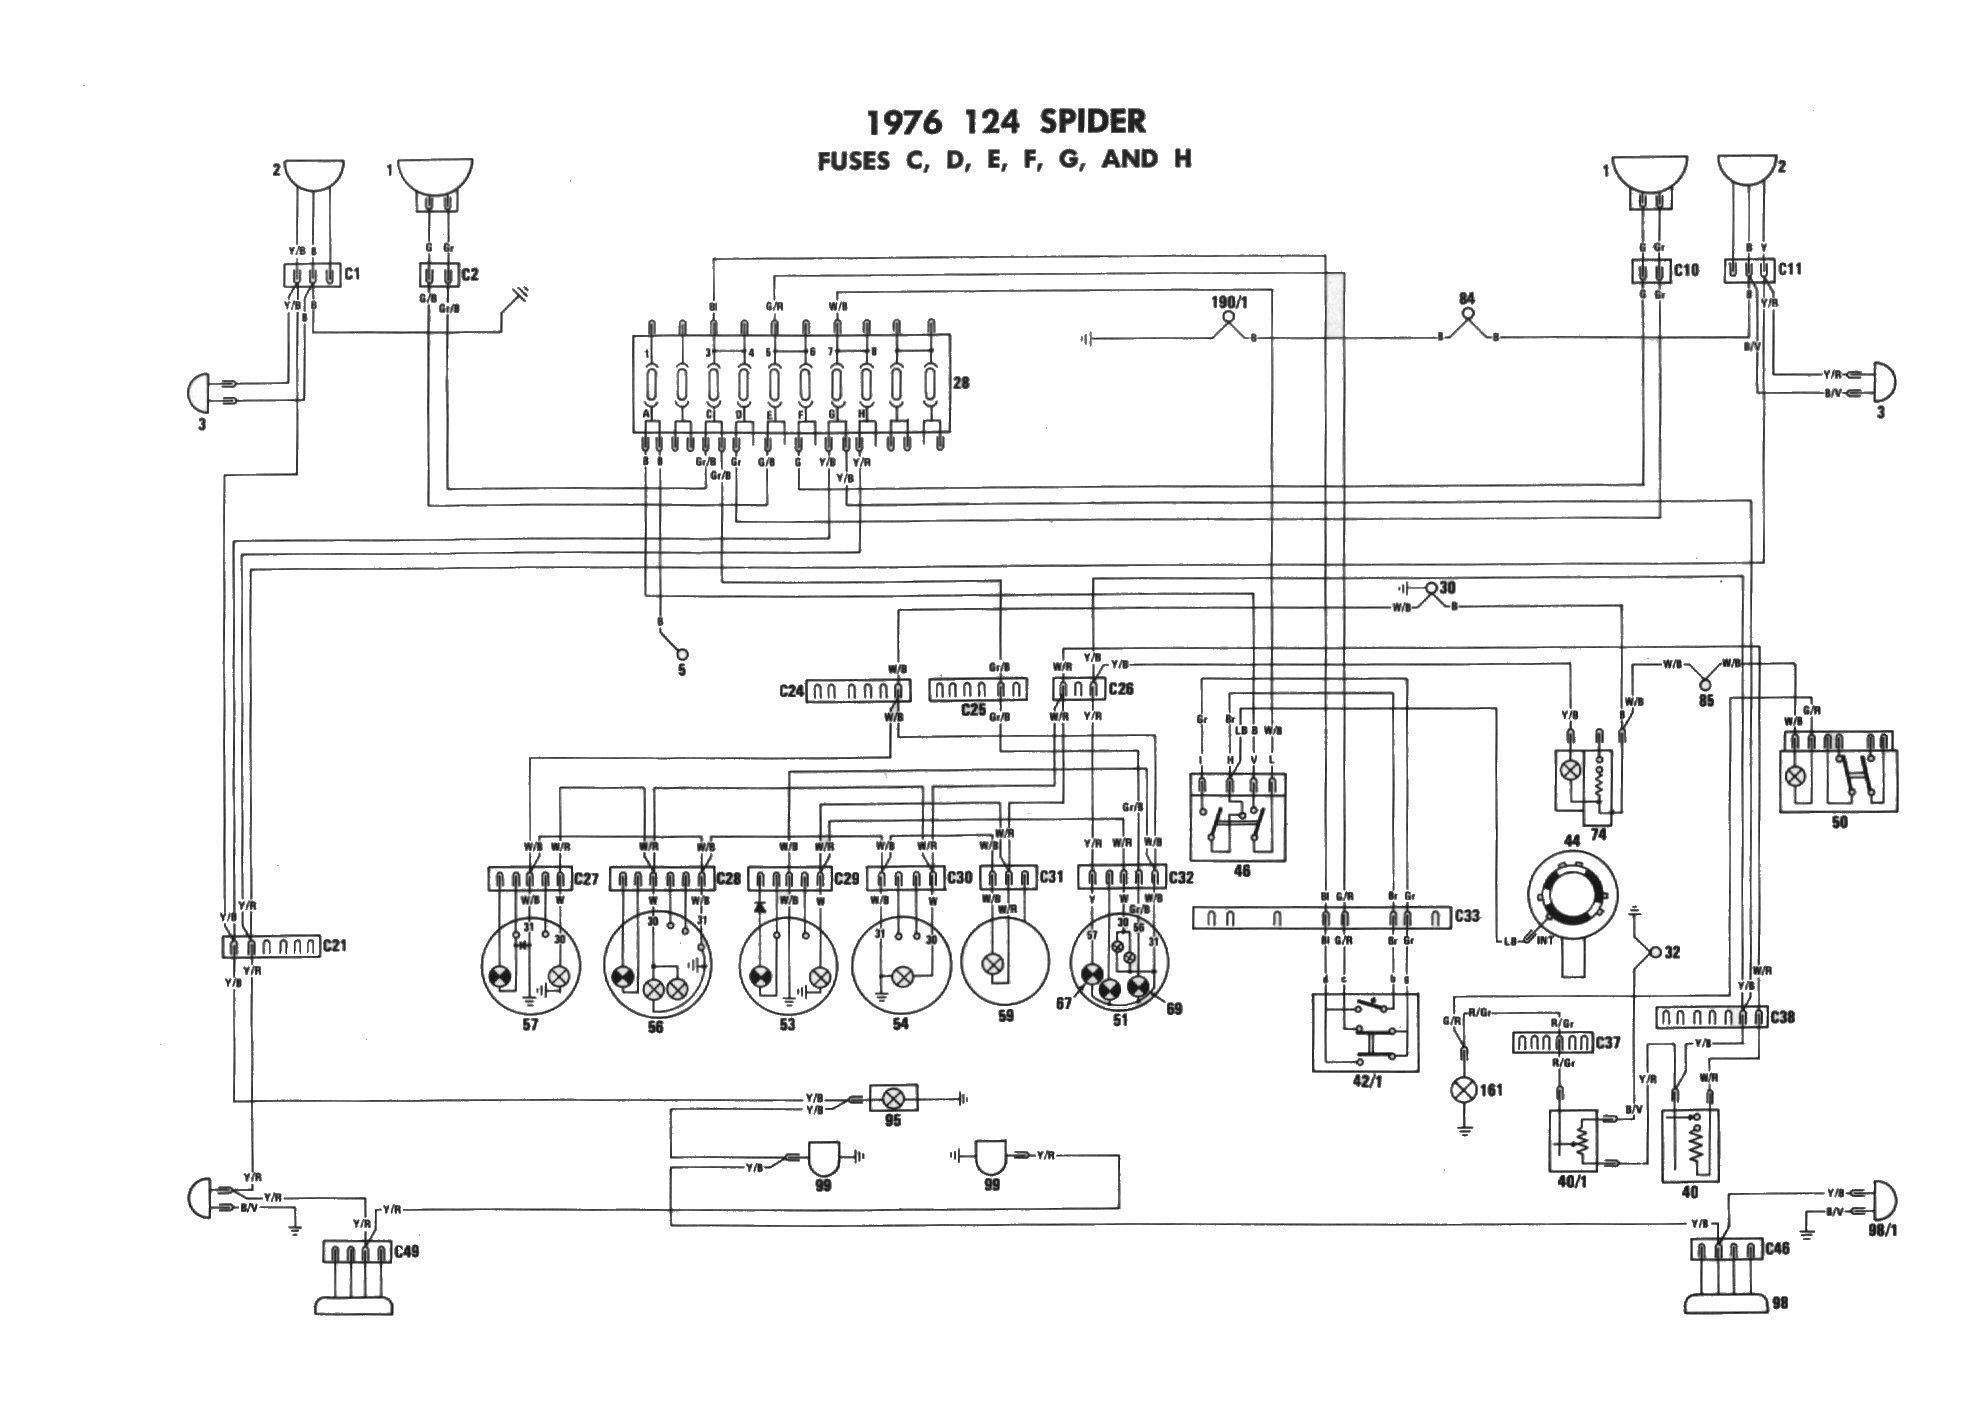 1974 Jeep Cj5 Horn Wiring Diagram Fiat 124 Spider Spidersweb Nl March 2014